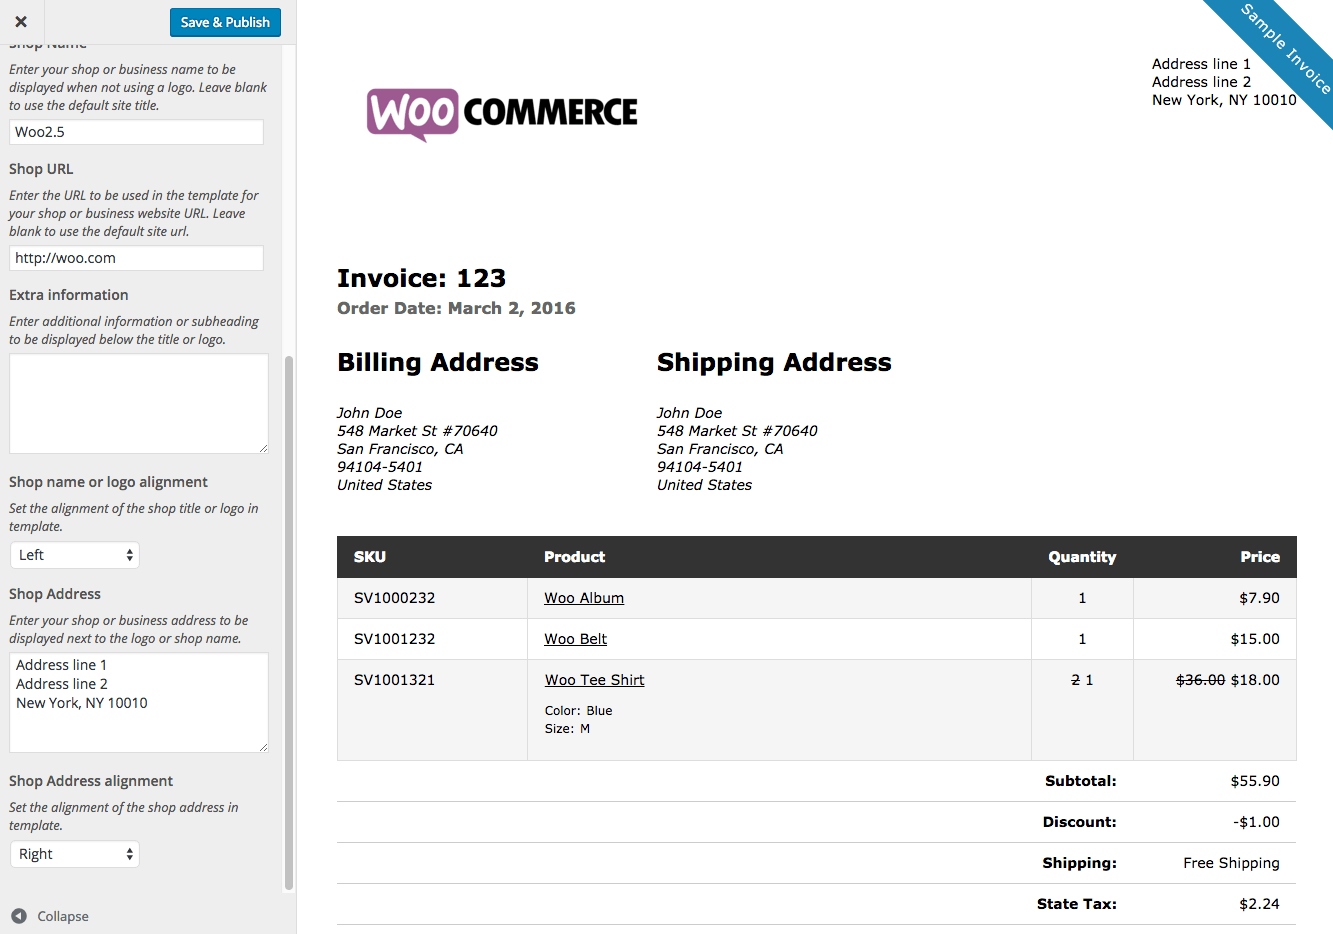 Sandiegolocksmithsus  Gorgeous Woocommerce Print Invoices Amp Packing Lists  Woocommerce Docs With Marvelous Woocommerce Print Invoices  Packing Lists Customizer With Divine Goodwill Tax Deduction Receipt Also Office Receipt Template In Addition Email With Read Receipt And Wave Receipt As Well As Printable Blank Receipts Additionally Make Receipts Free From Docswoocommercecom With Sandiegolocksmithsus  Marvelous Woocommerce Print Invoices Amp Packing Lists  Woocommerce Docs With Divine Woocommerce Print Invoices  Packing Lists Customizer And Gorgeous Goodwill Tax Deduction Receipt Also Office Receipt Template In Addition Email With Read Receipt From Docswoocommercecom